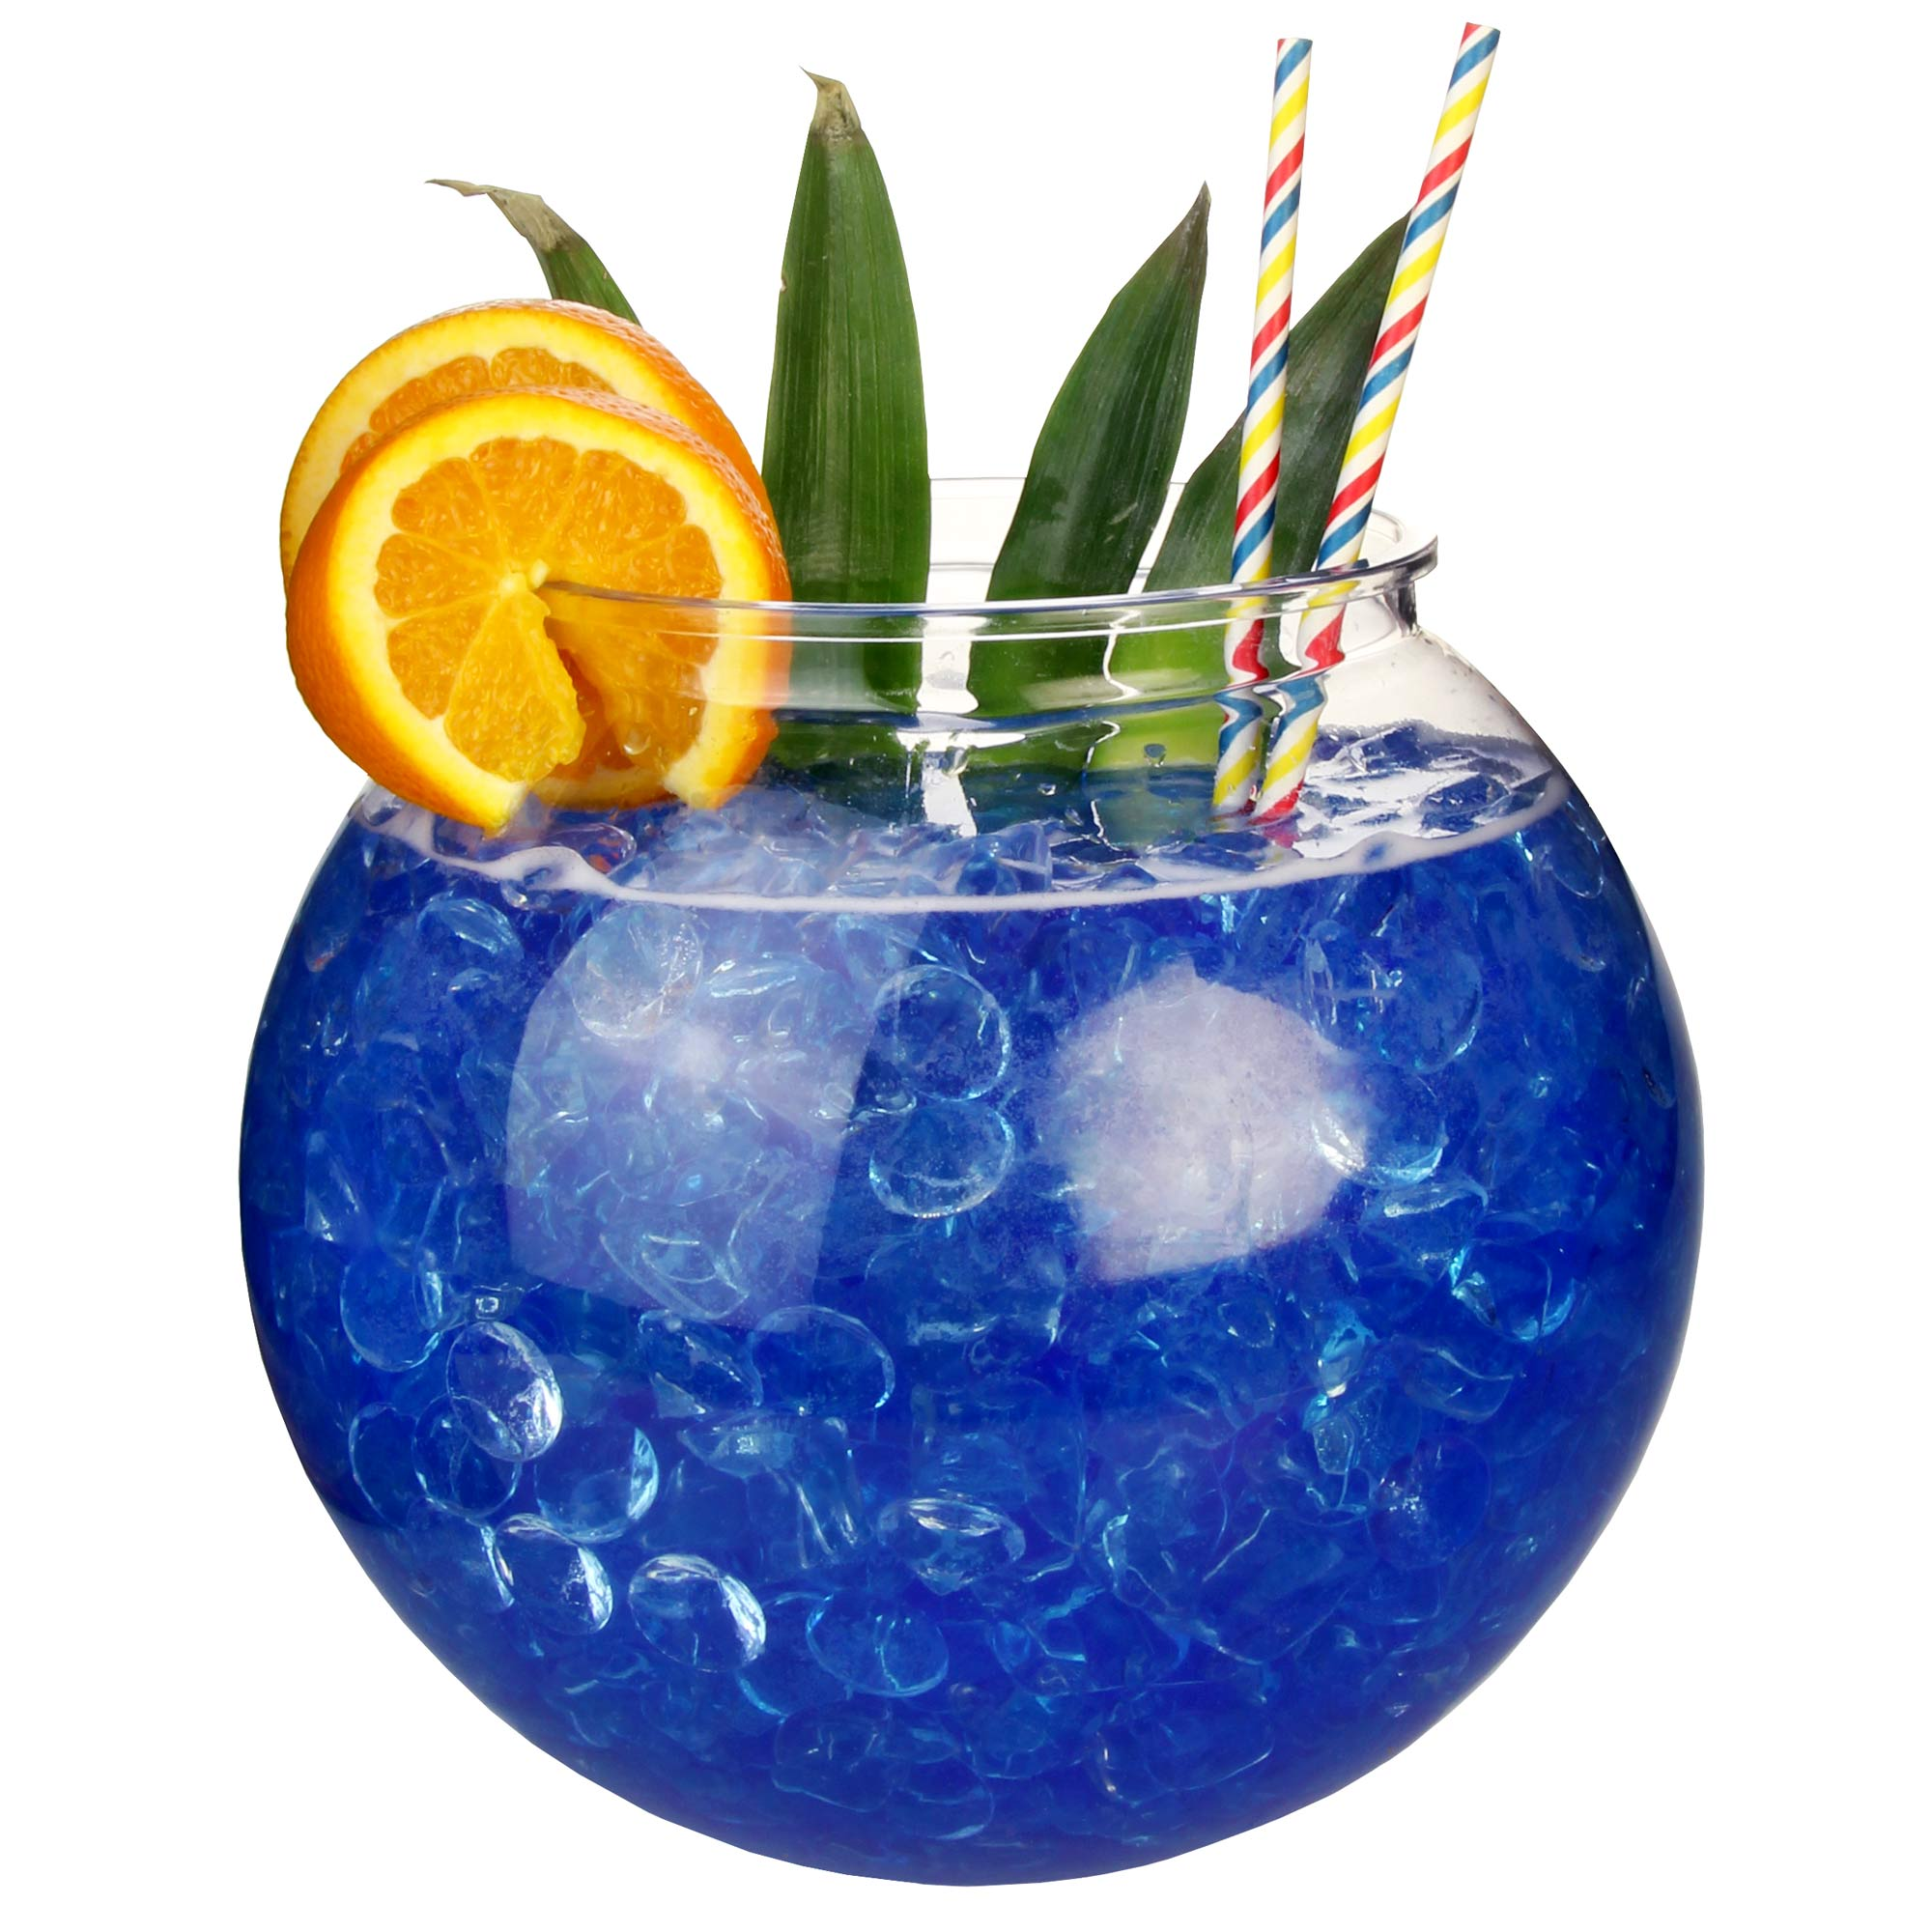 Xl 5 litre plastic cocktail fish bowl sharer at drinkstuff for Restaurants with fish bowl drinks near me